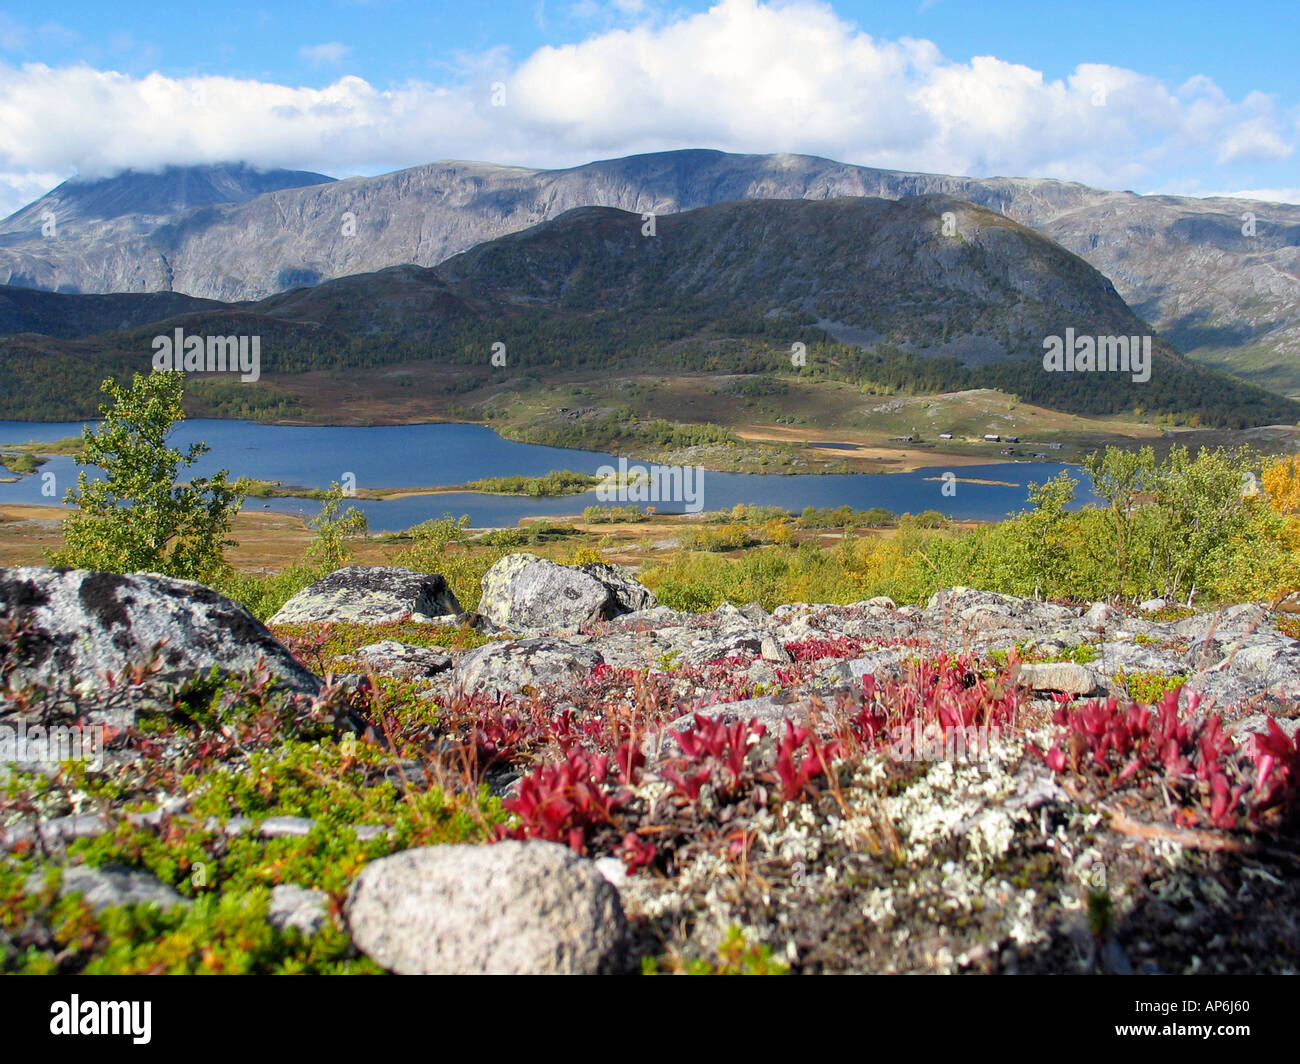 Indian summer on valdresflya, Jotunheimen, Norway - Stock Image